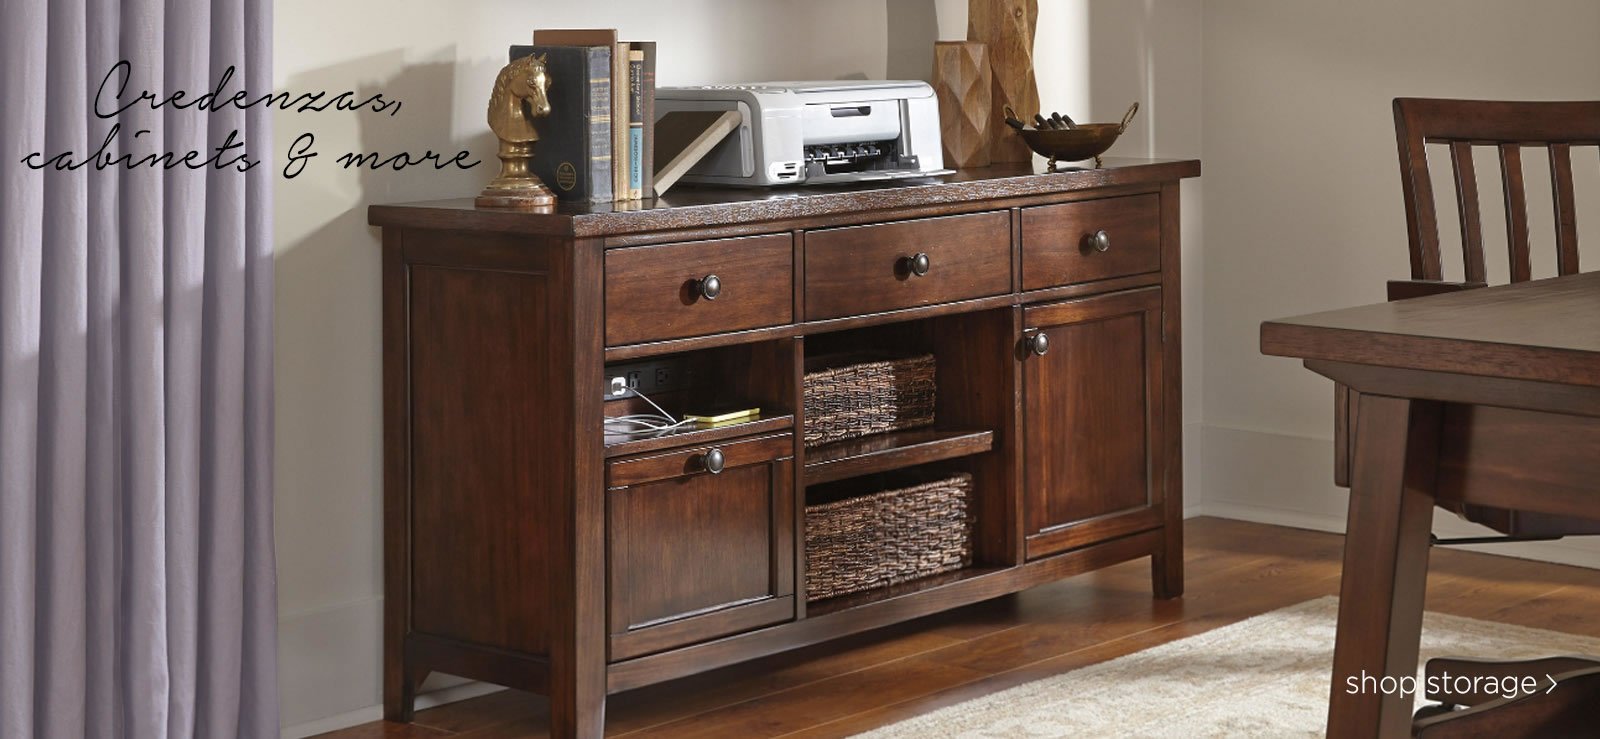 home office furniture shop storage shop storage · home office HZMDTYN